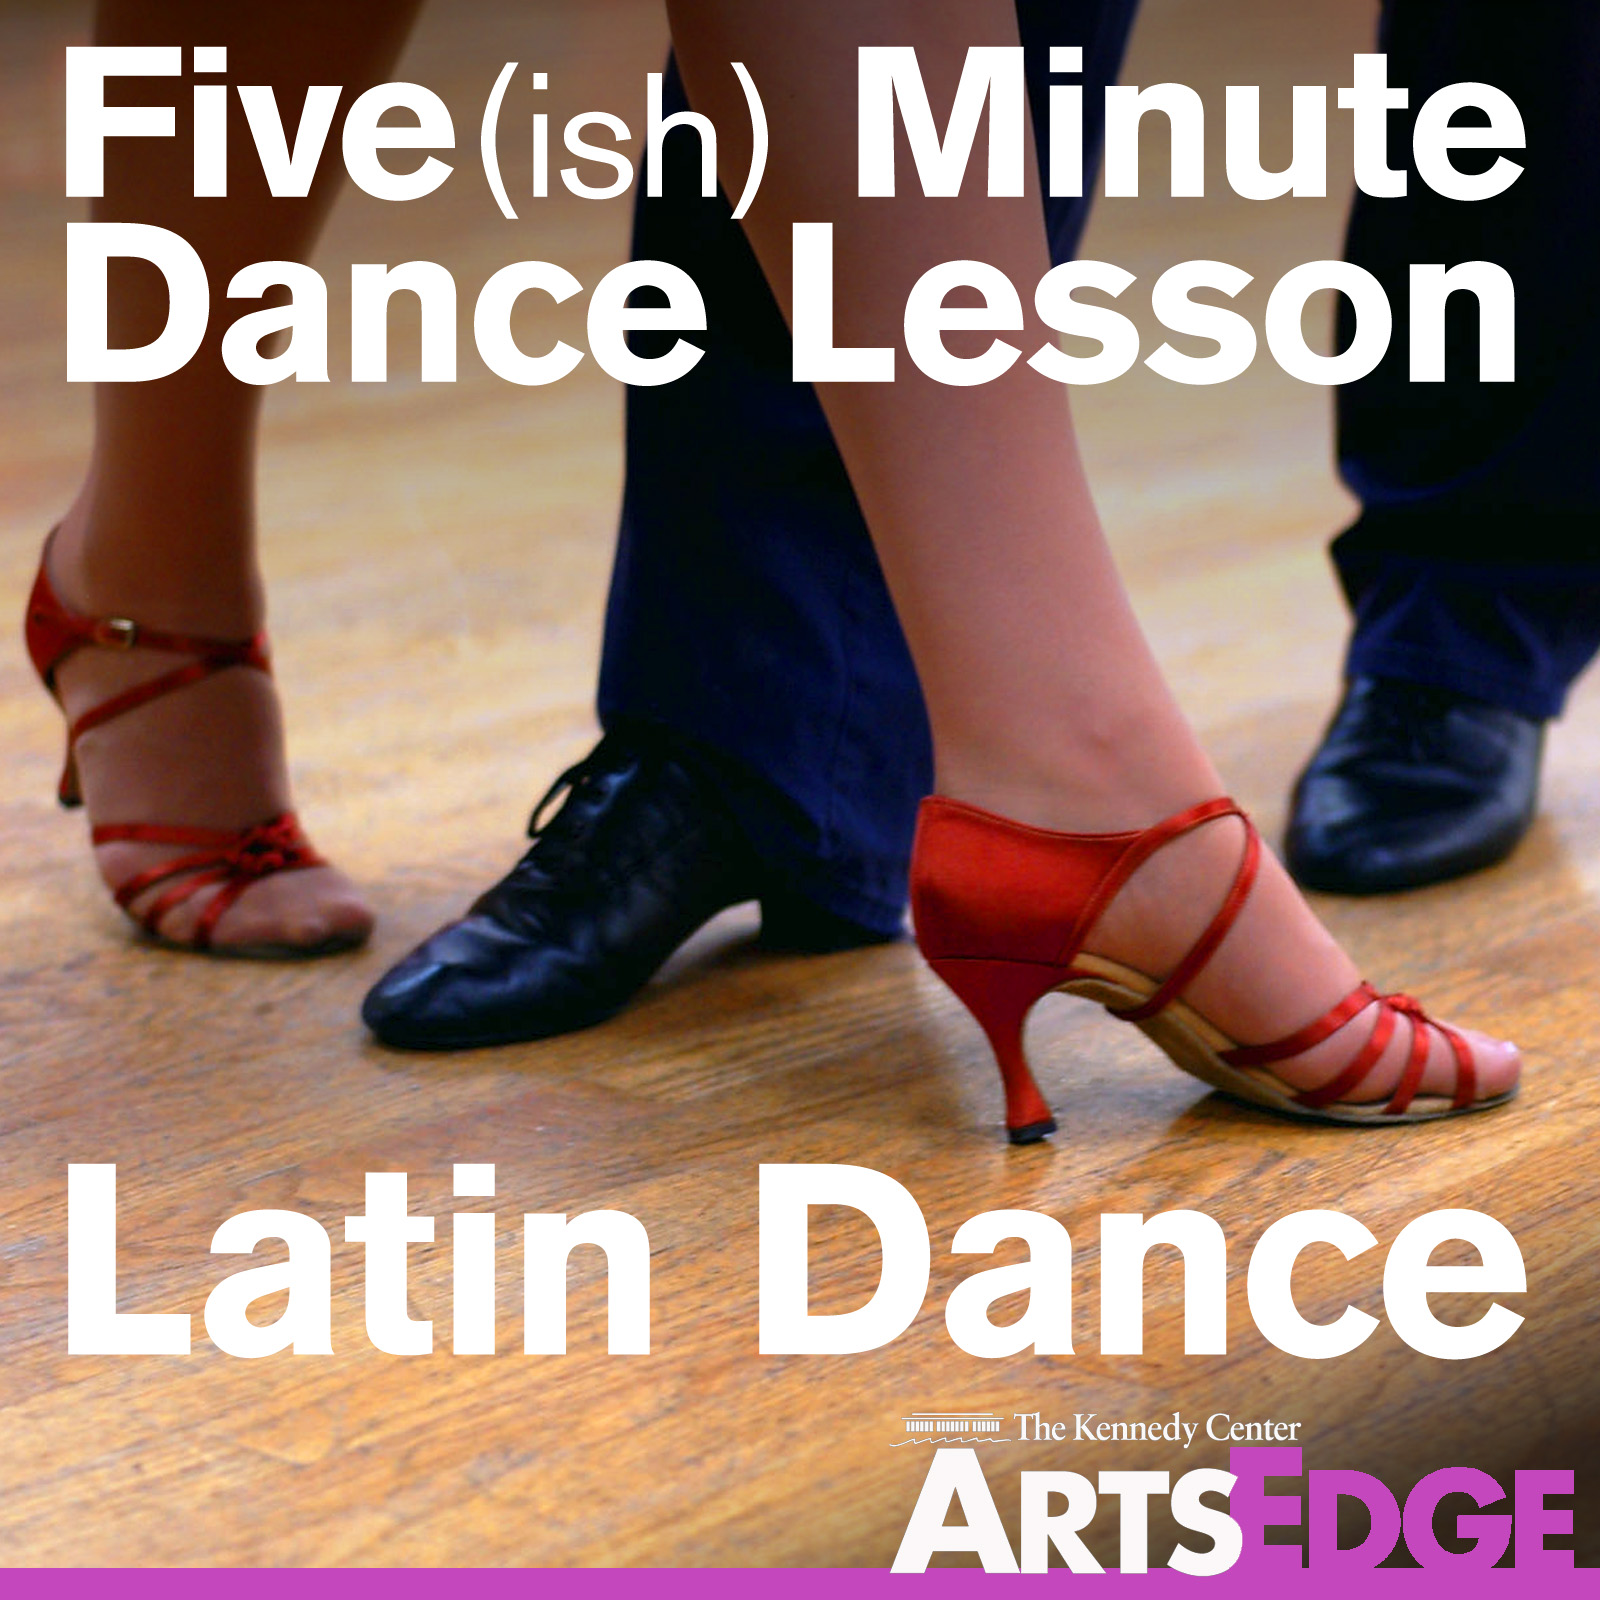 Five(ish) Minute Dance Lesson: Latin Dance